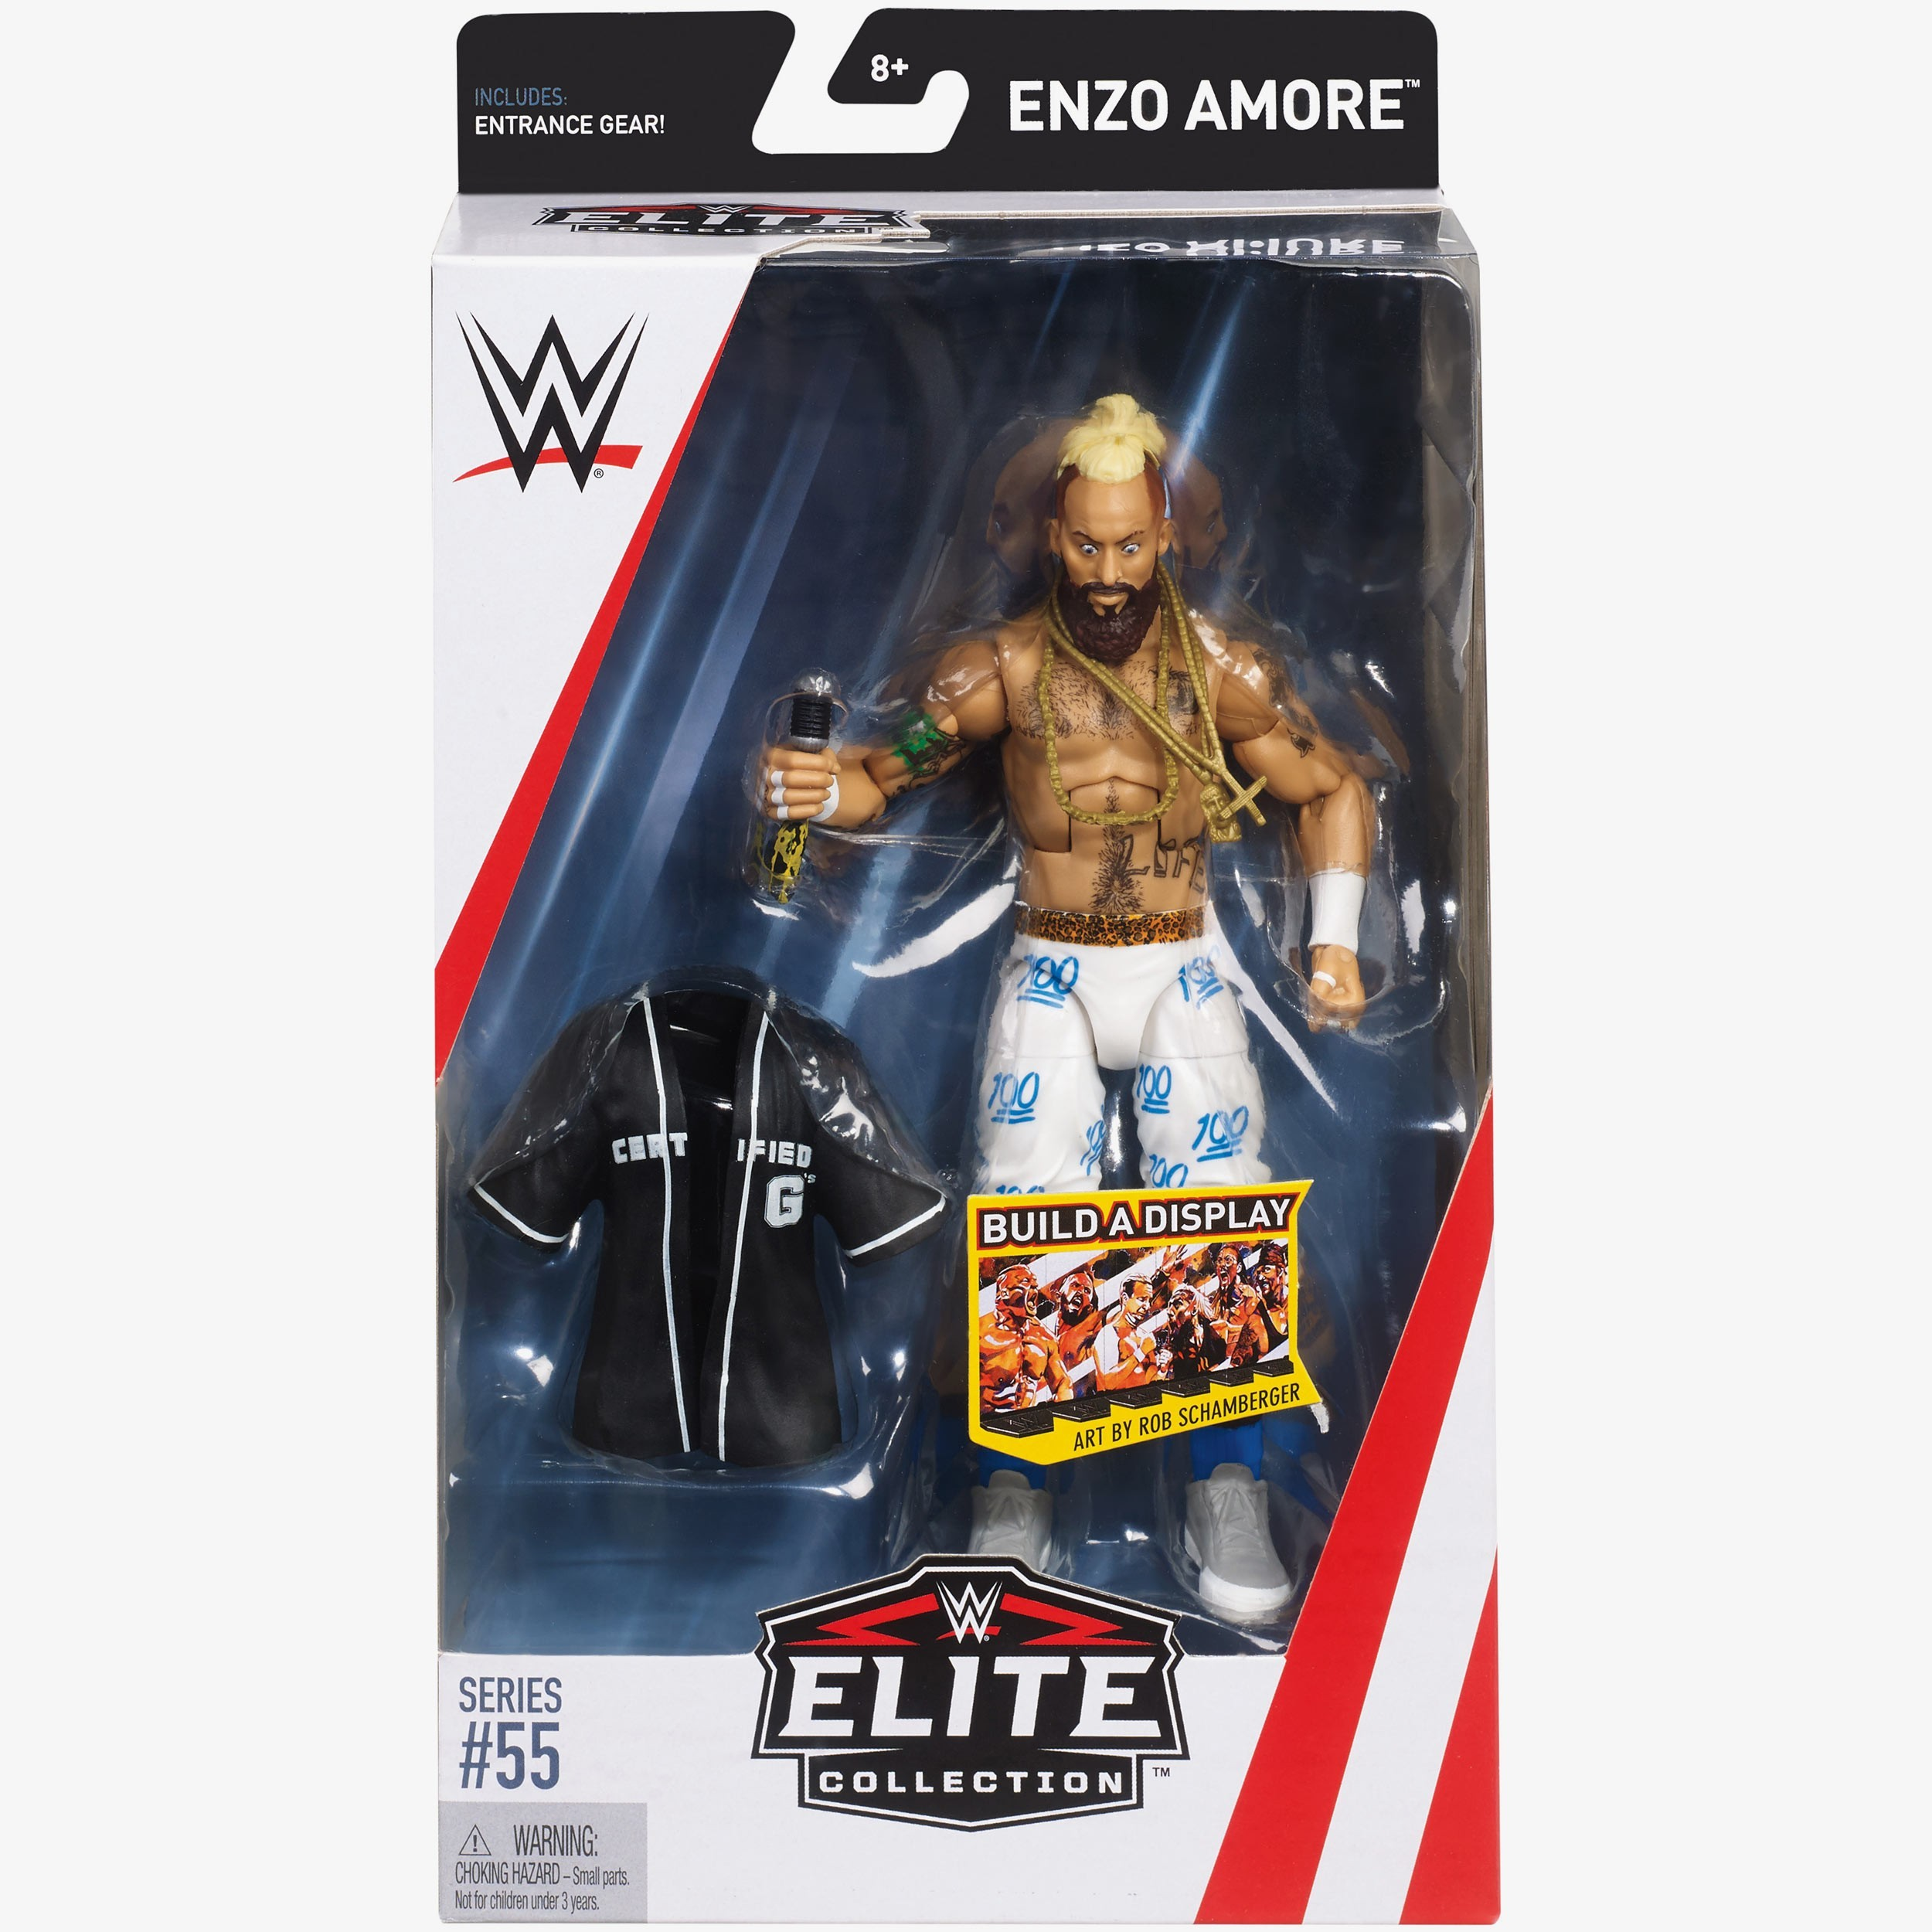 Enzo Amore Wwe Elite Collection Series 55